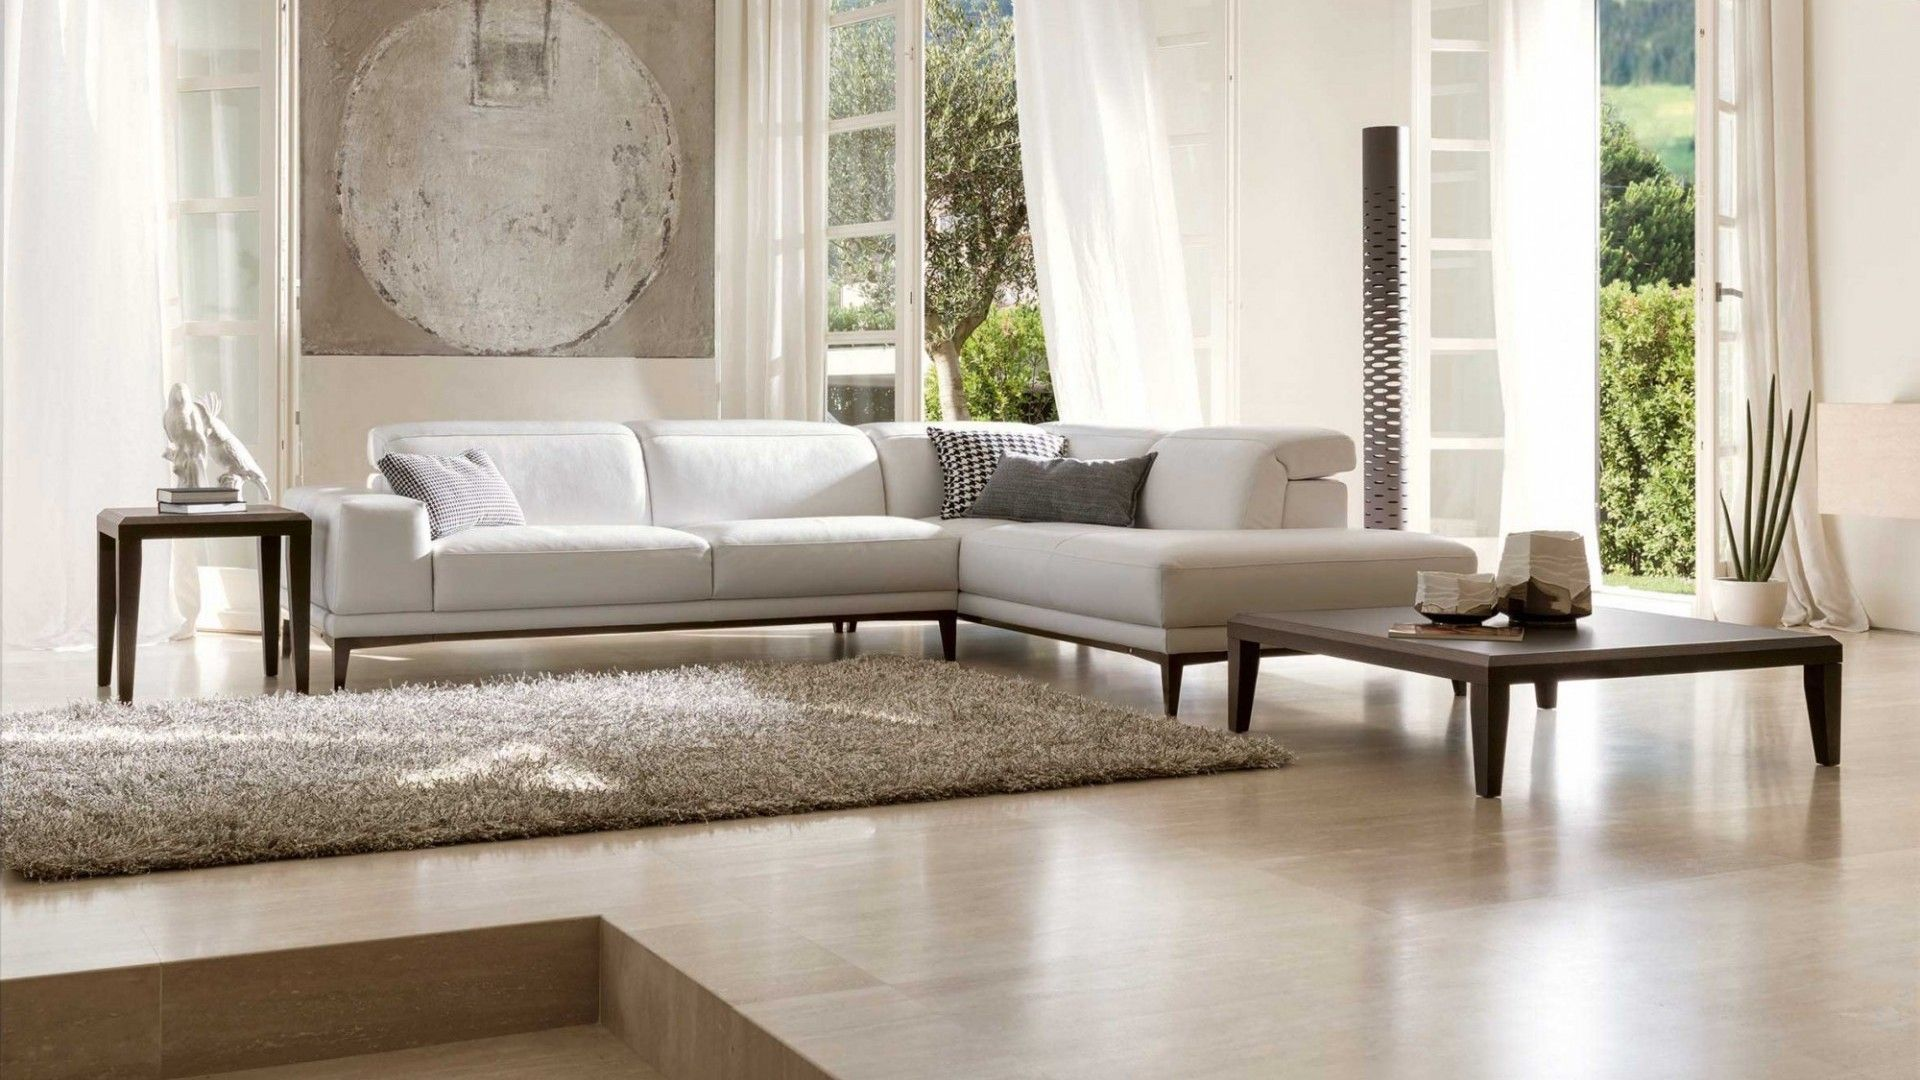 Designer sofa Italian modern furniture from